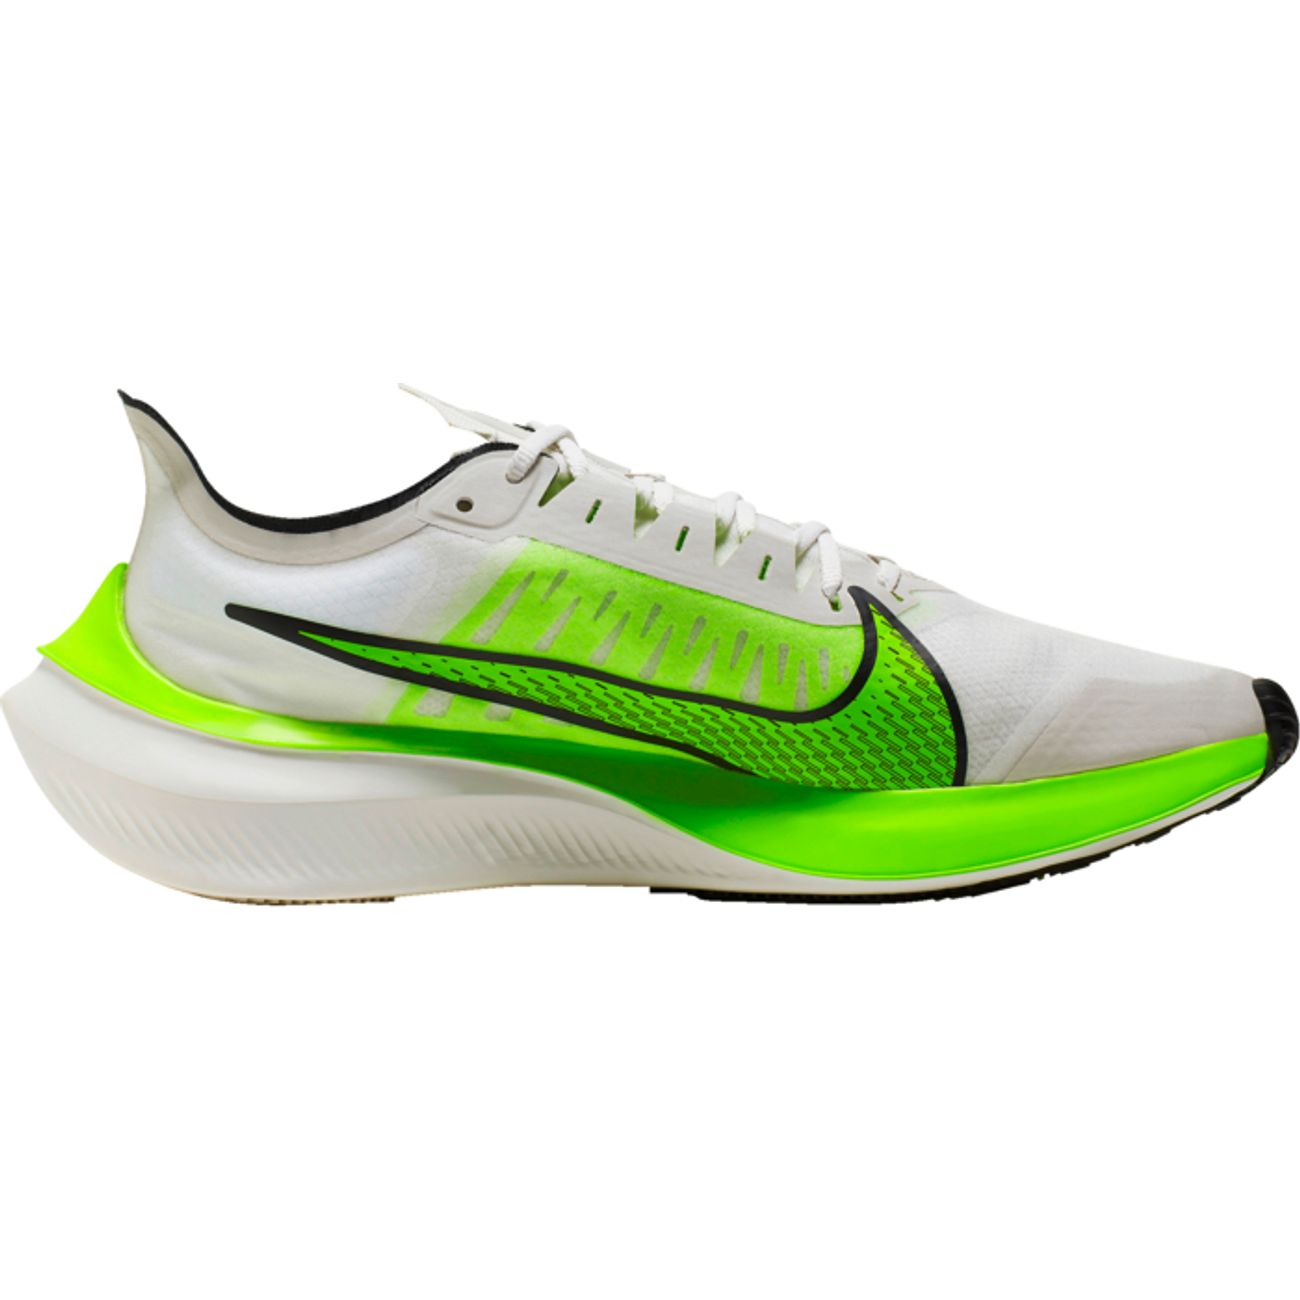 CHAUSSURES BASSES running homme NIKE ZOOM GRAVITY